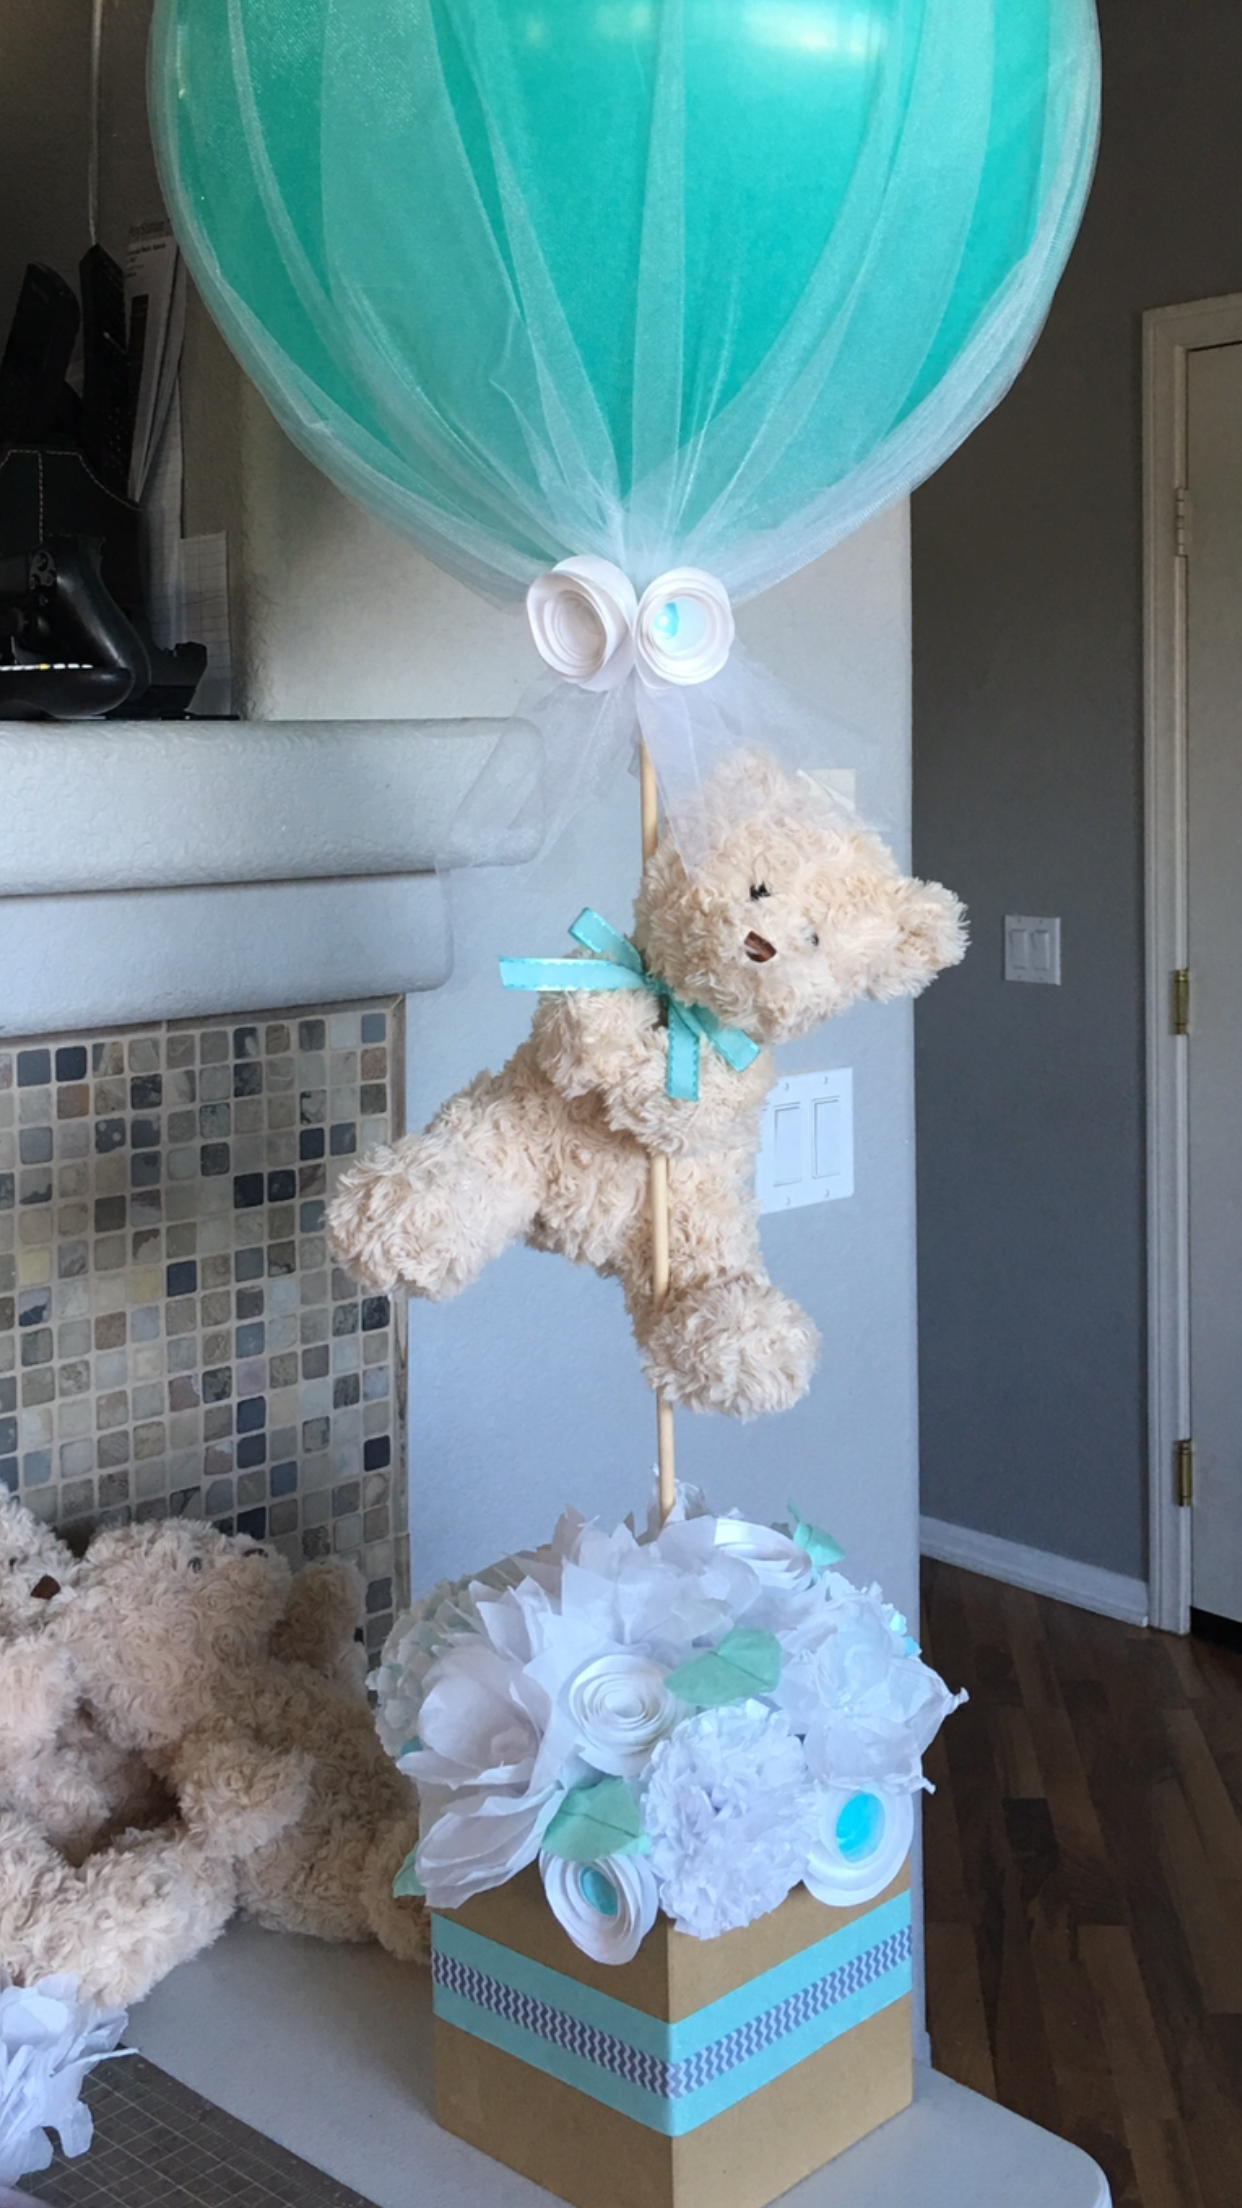 10 Attractive Baby Shower Centerpieces Ideas For Boys 10 gender reveal party food ideas for your family babies 19 2020